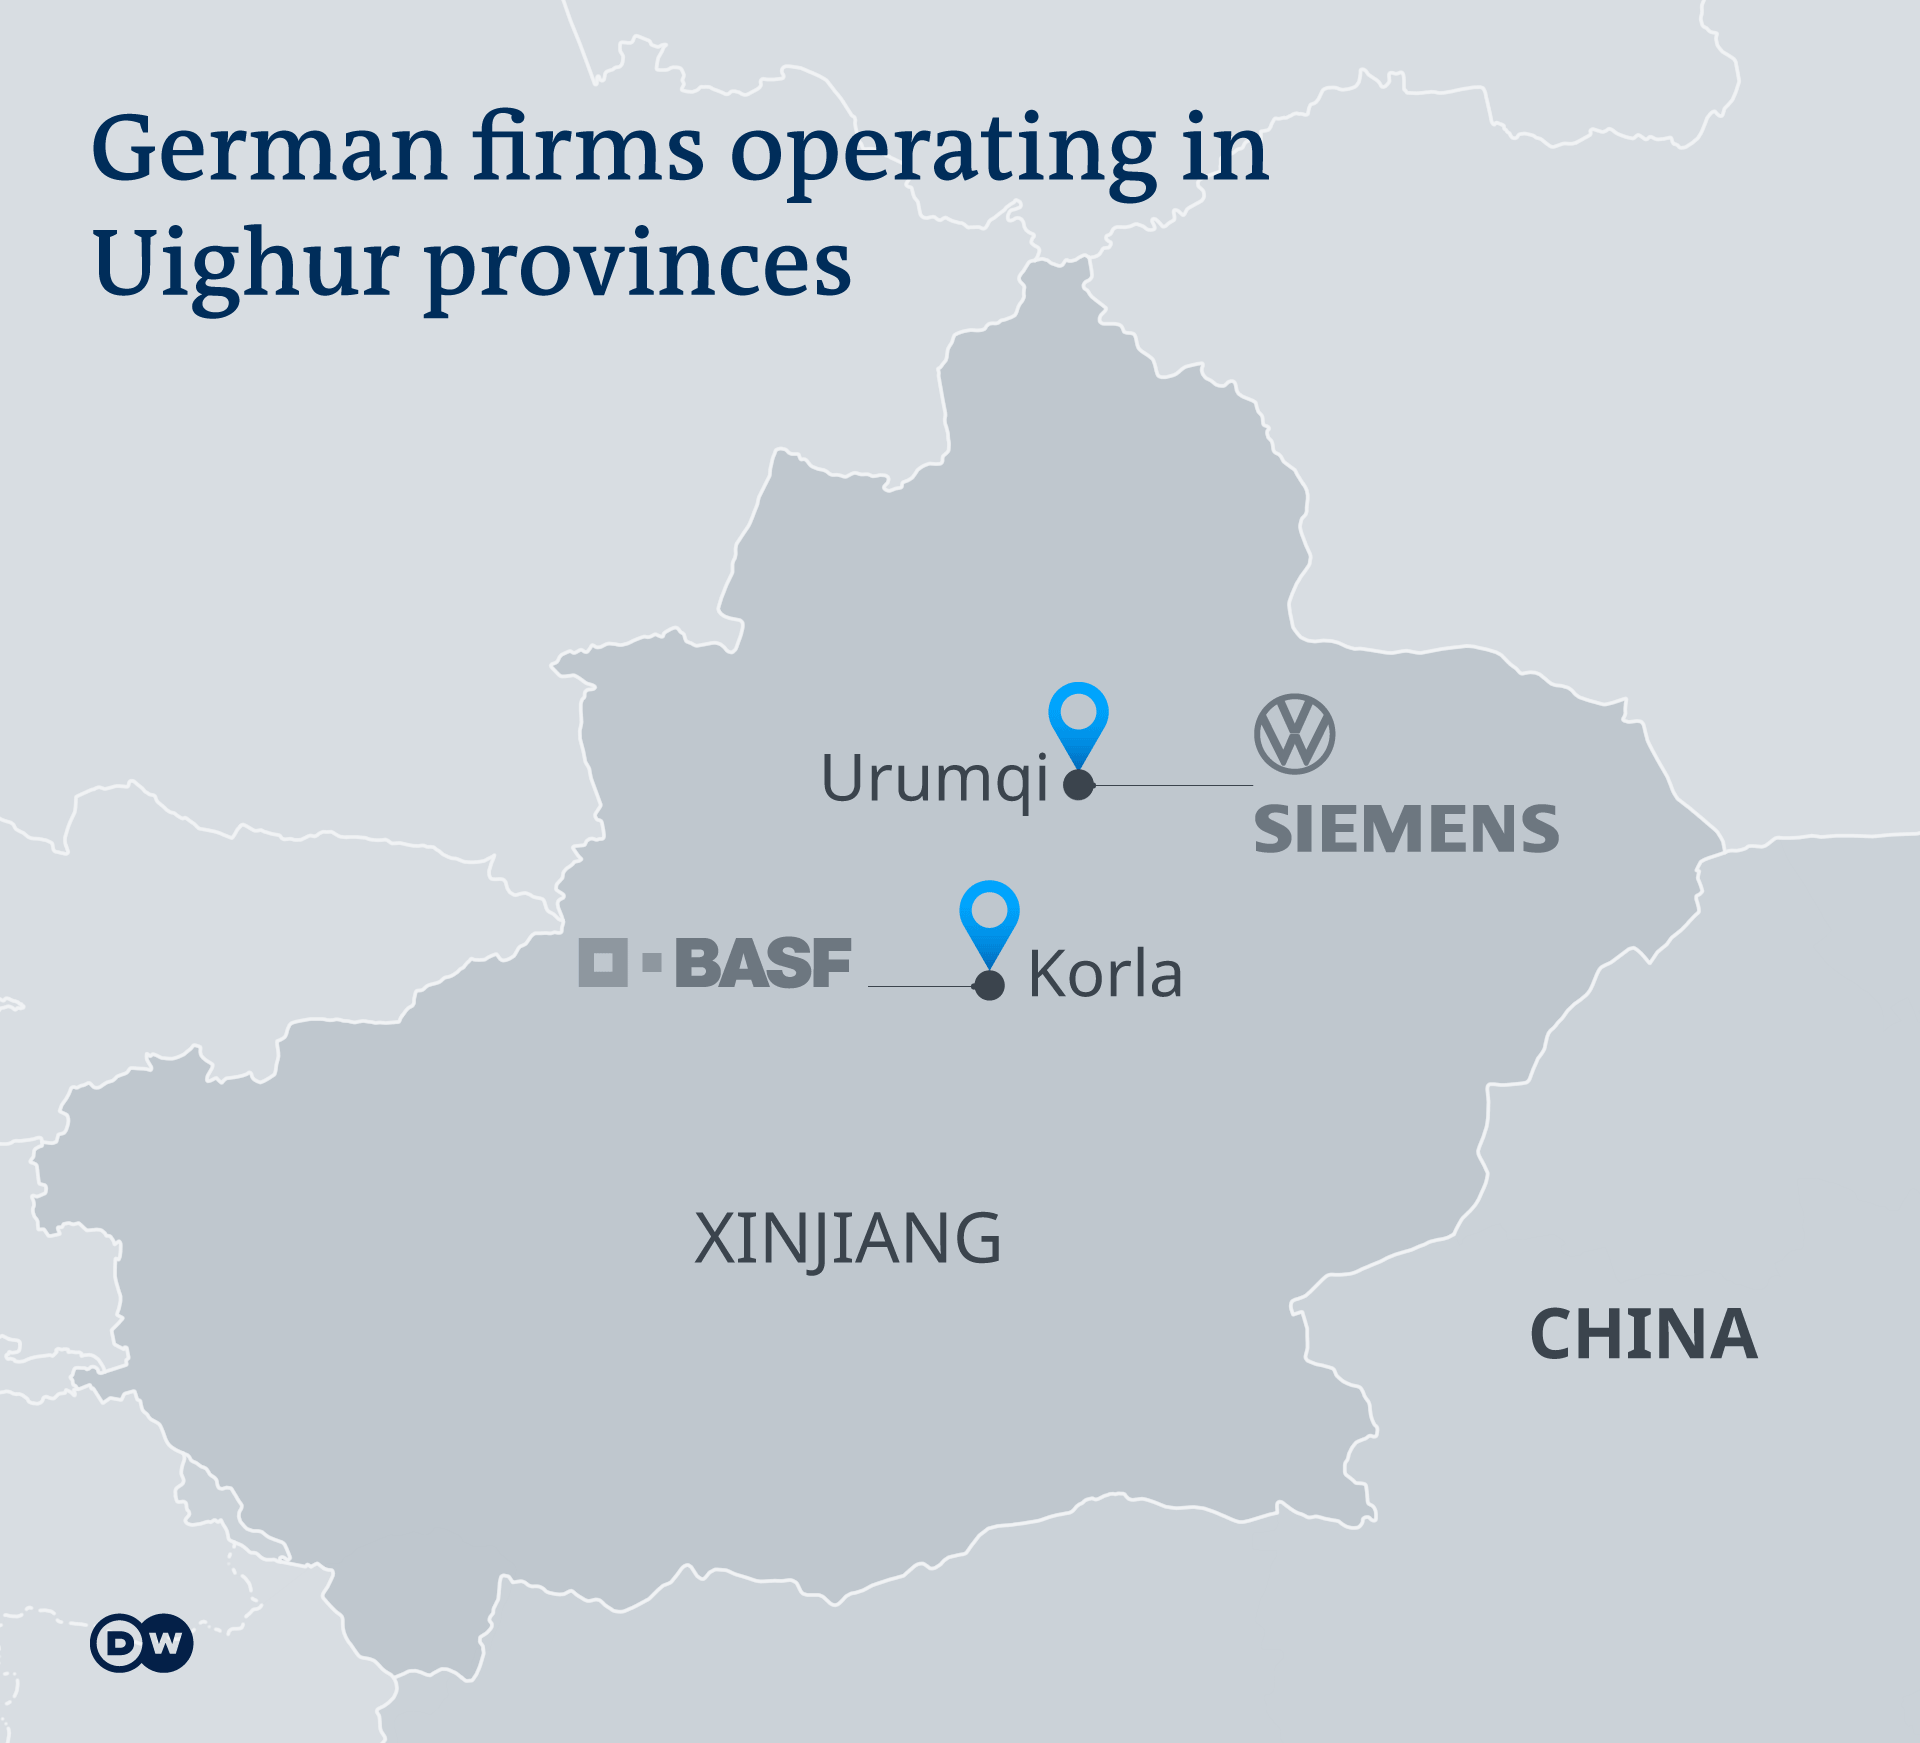 DW Infographic: German firms operaating in Uighur provinces in China